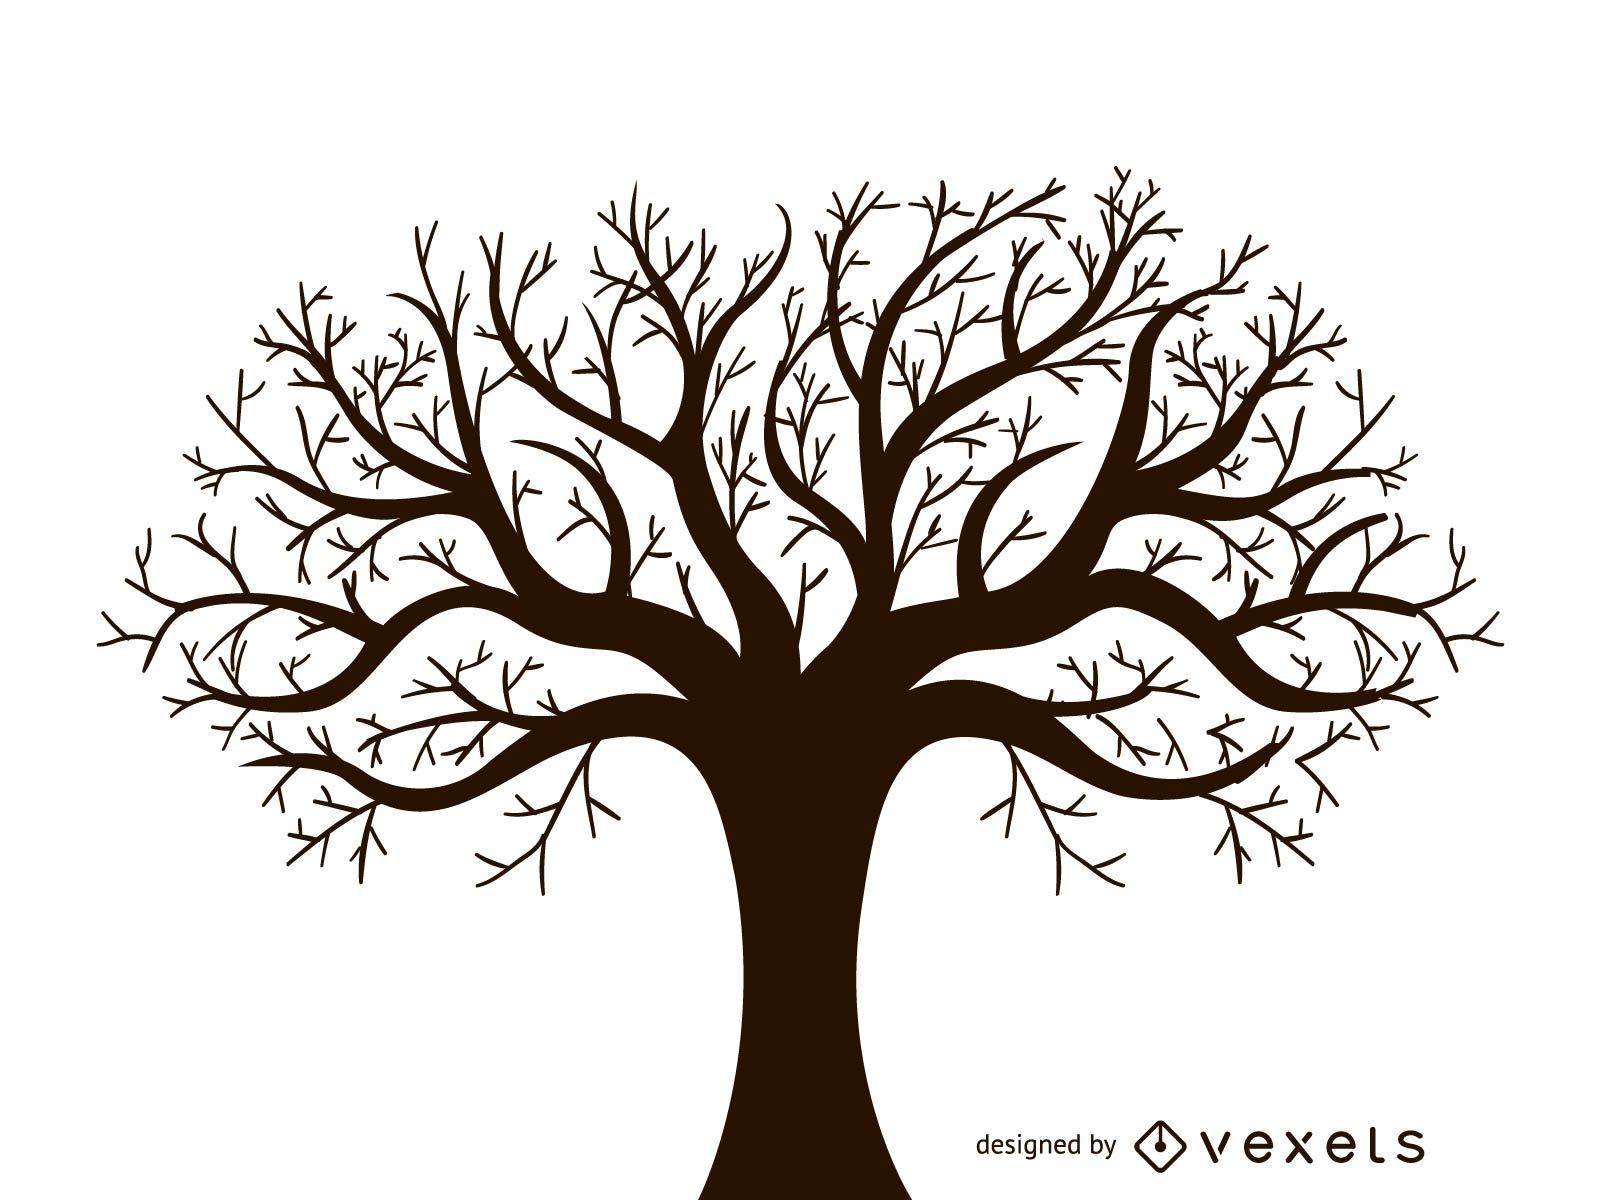 1600x1200 Leafless Autumn Tree Design Vector